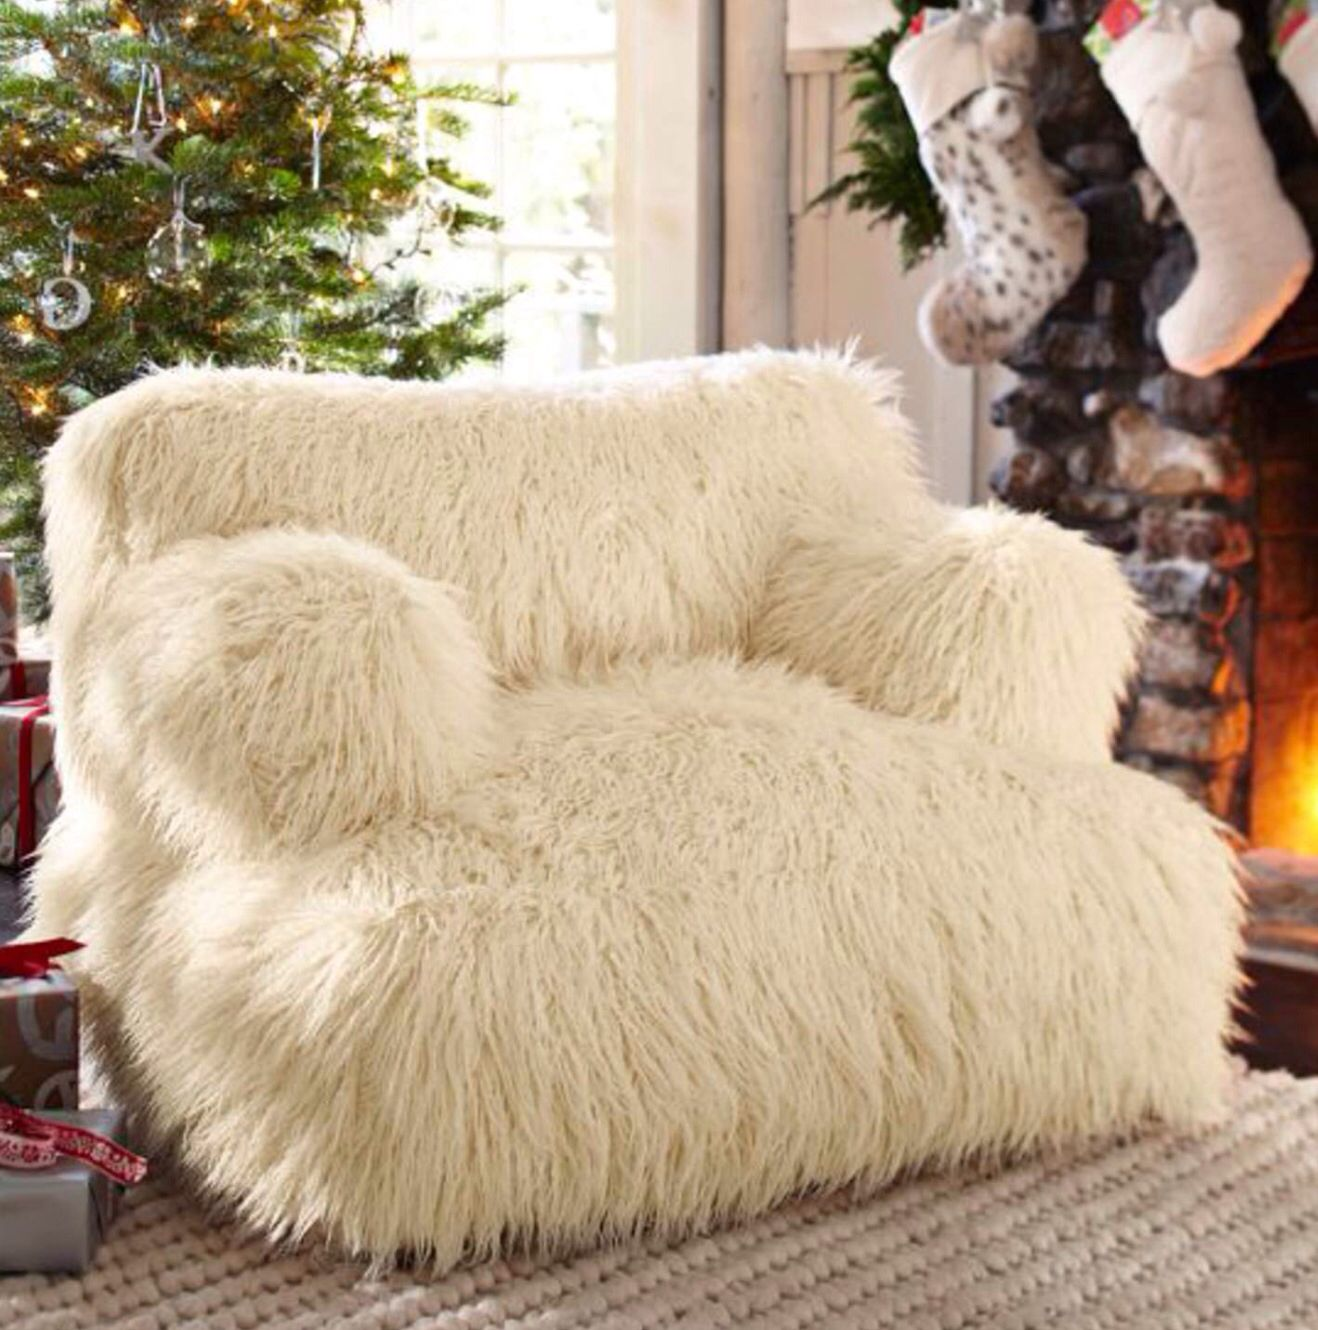 Ordinaire Fuzzy Chair